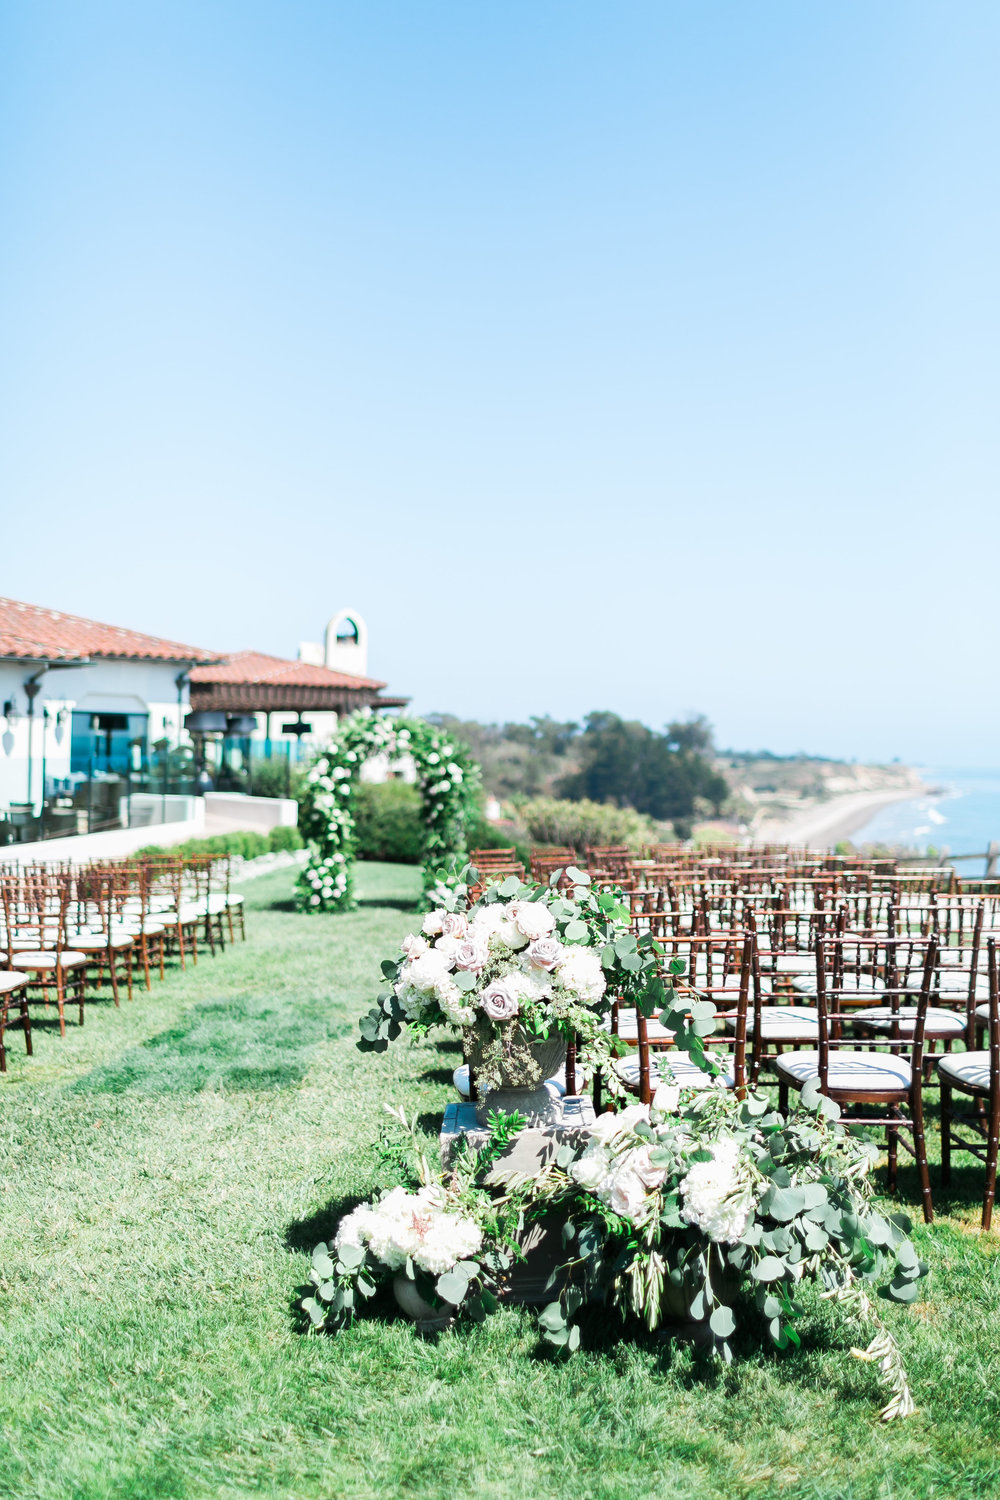 Wedding ceremony near the ocean.   CREDITS:  Destination Wedding Planner  ANDREA EPPOLITO EVENTS  · Images by  J.ANNE P  HOTOGRAPHY  · Video  HOO FILMS  · Venue Ritz Carlton Bacara Santa Barbara ·Gown  MONIQUE LHULLIER ·Bridesmaids Dresses  SHOW ME YOUR MUMU ·Stationery  SHE PAPERIE ·Bride's Shoes  BADGLEY MISCHKA ·Hair and Makeup  TEAM HAIR AND MAKEUP · Floral  BLUE MAGNOLIA ·Linen  LA TAVOLA ·Decor Rentals  TENT MERCHANT ·Calligraphy  EBB ·Lighting  FIVE STAR AV ·Ice Cream Station  MCCONNELL'S ICE CREAM